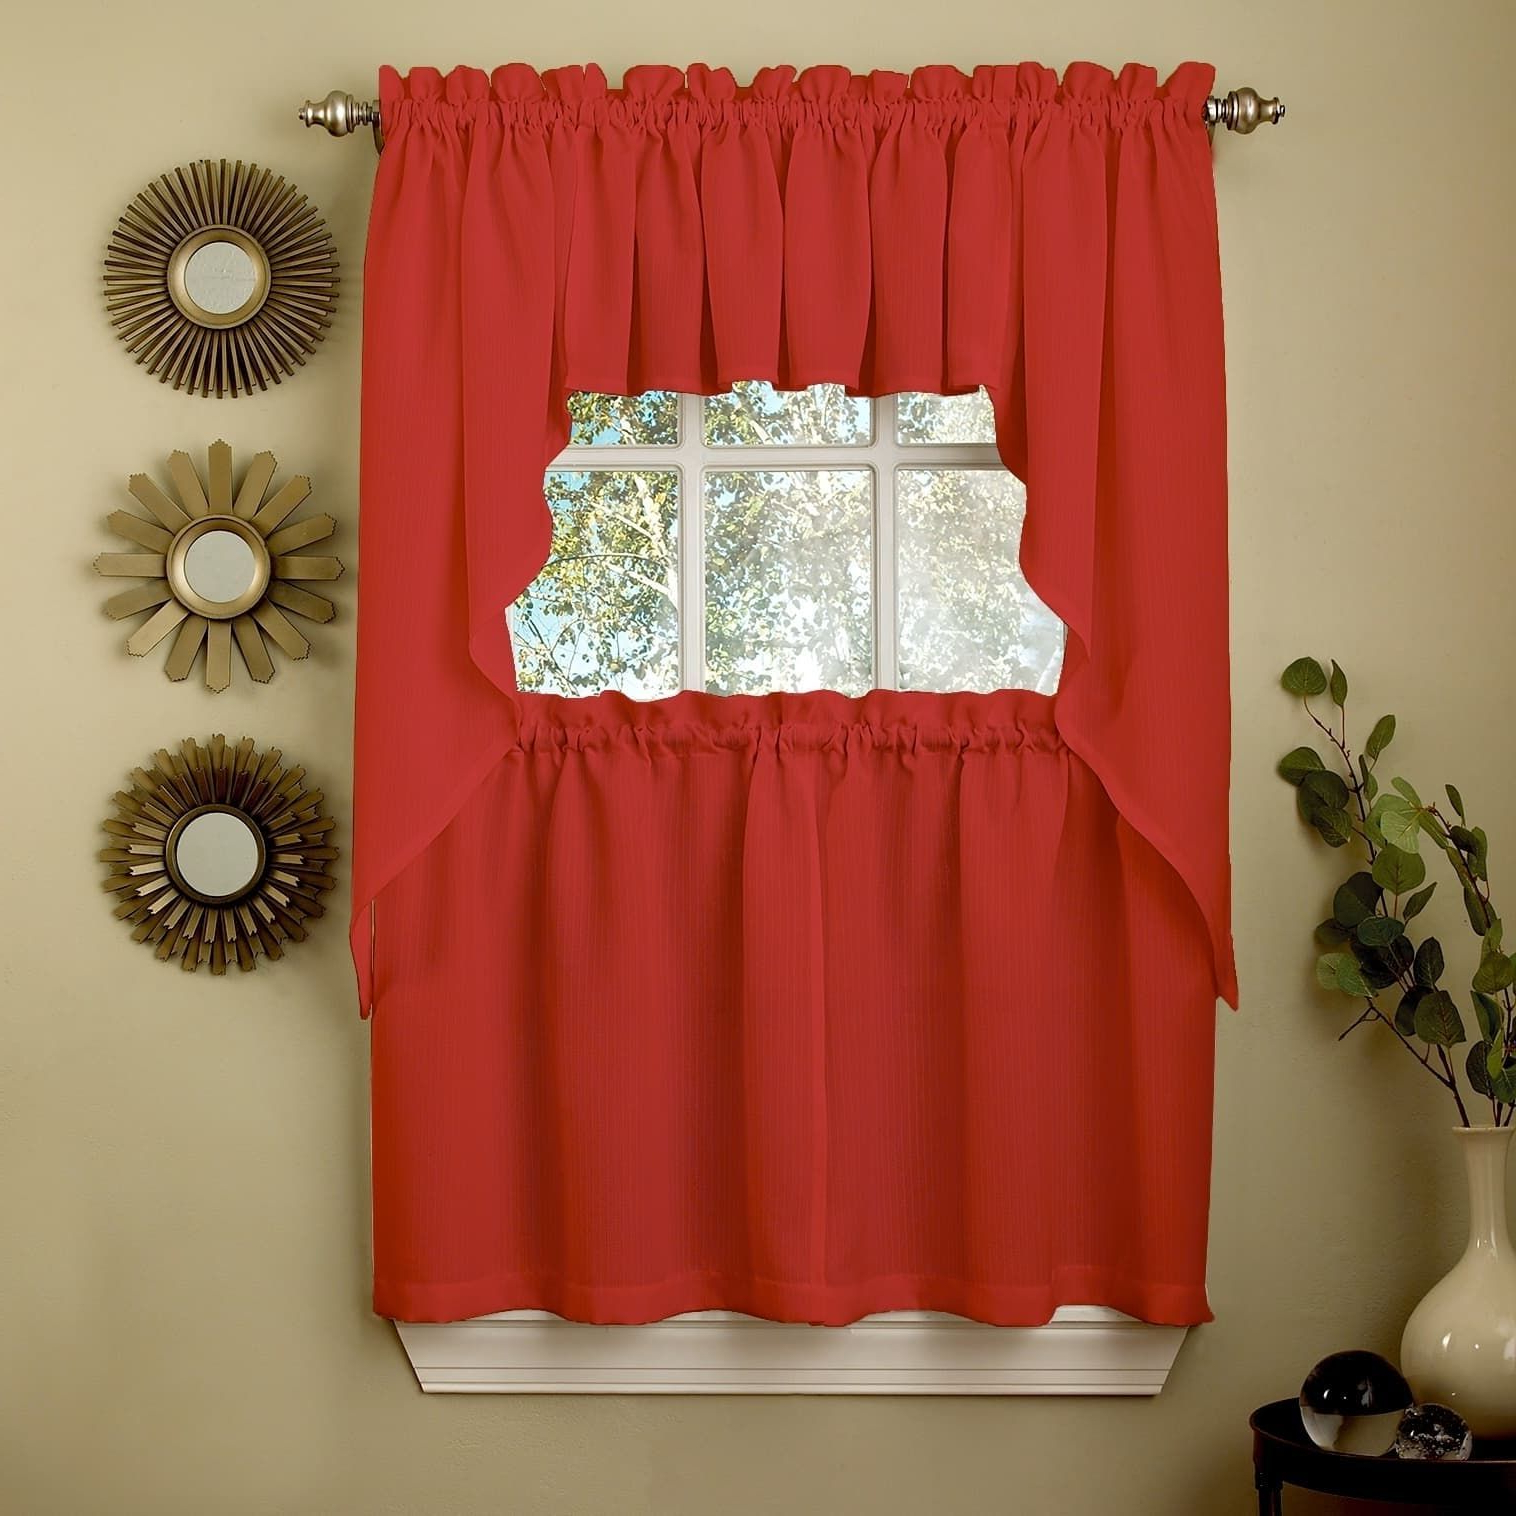 2021 Opaque Red Ribcord Kitchen Curtain Pieces – Tiers/ Valances With Regard To Bermuda Ruffle Kitchen Curtain Tier Sets (View 1 of 20)